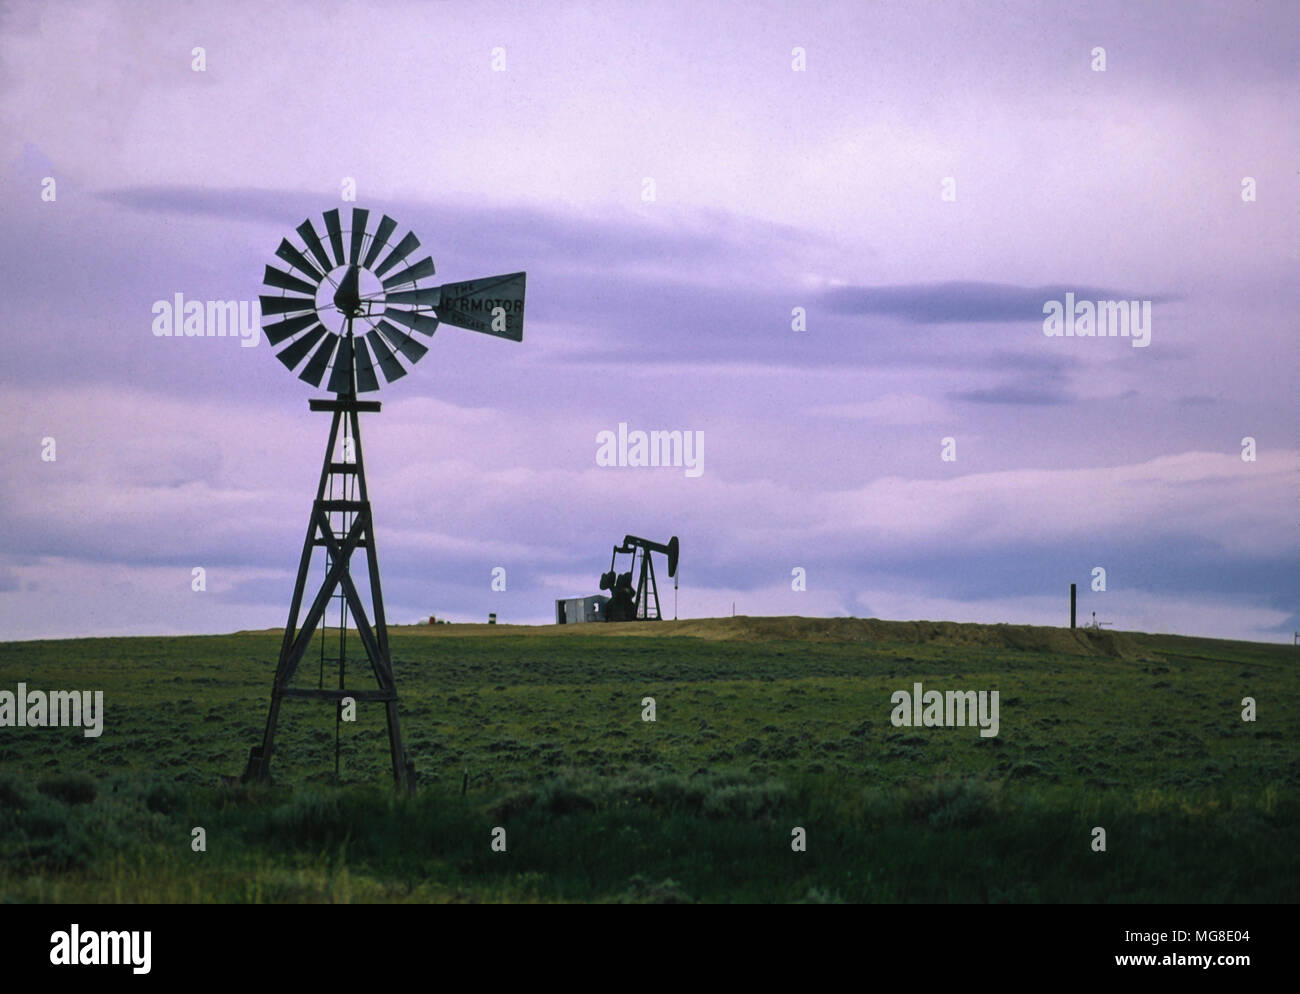 Windmill and oil well in central Wyoming, one non-polluting, the other polluting and contributing to global warming. - Stock Image